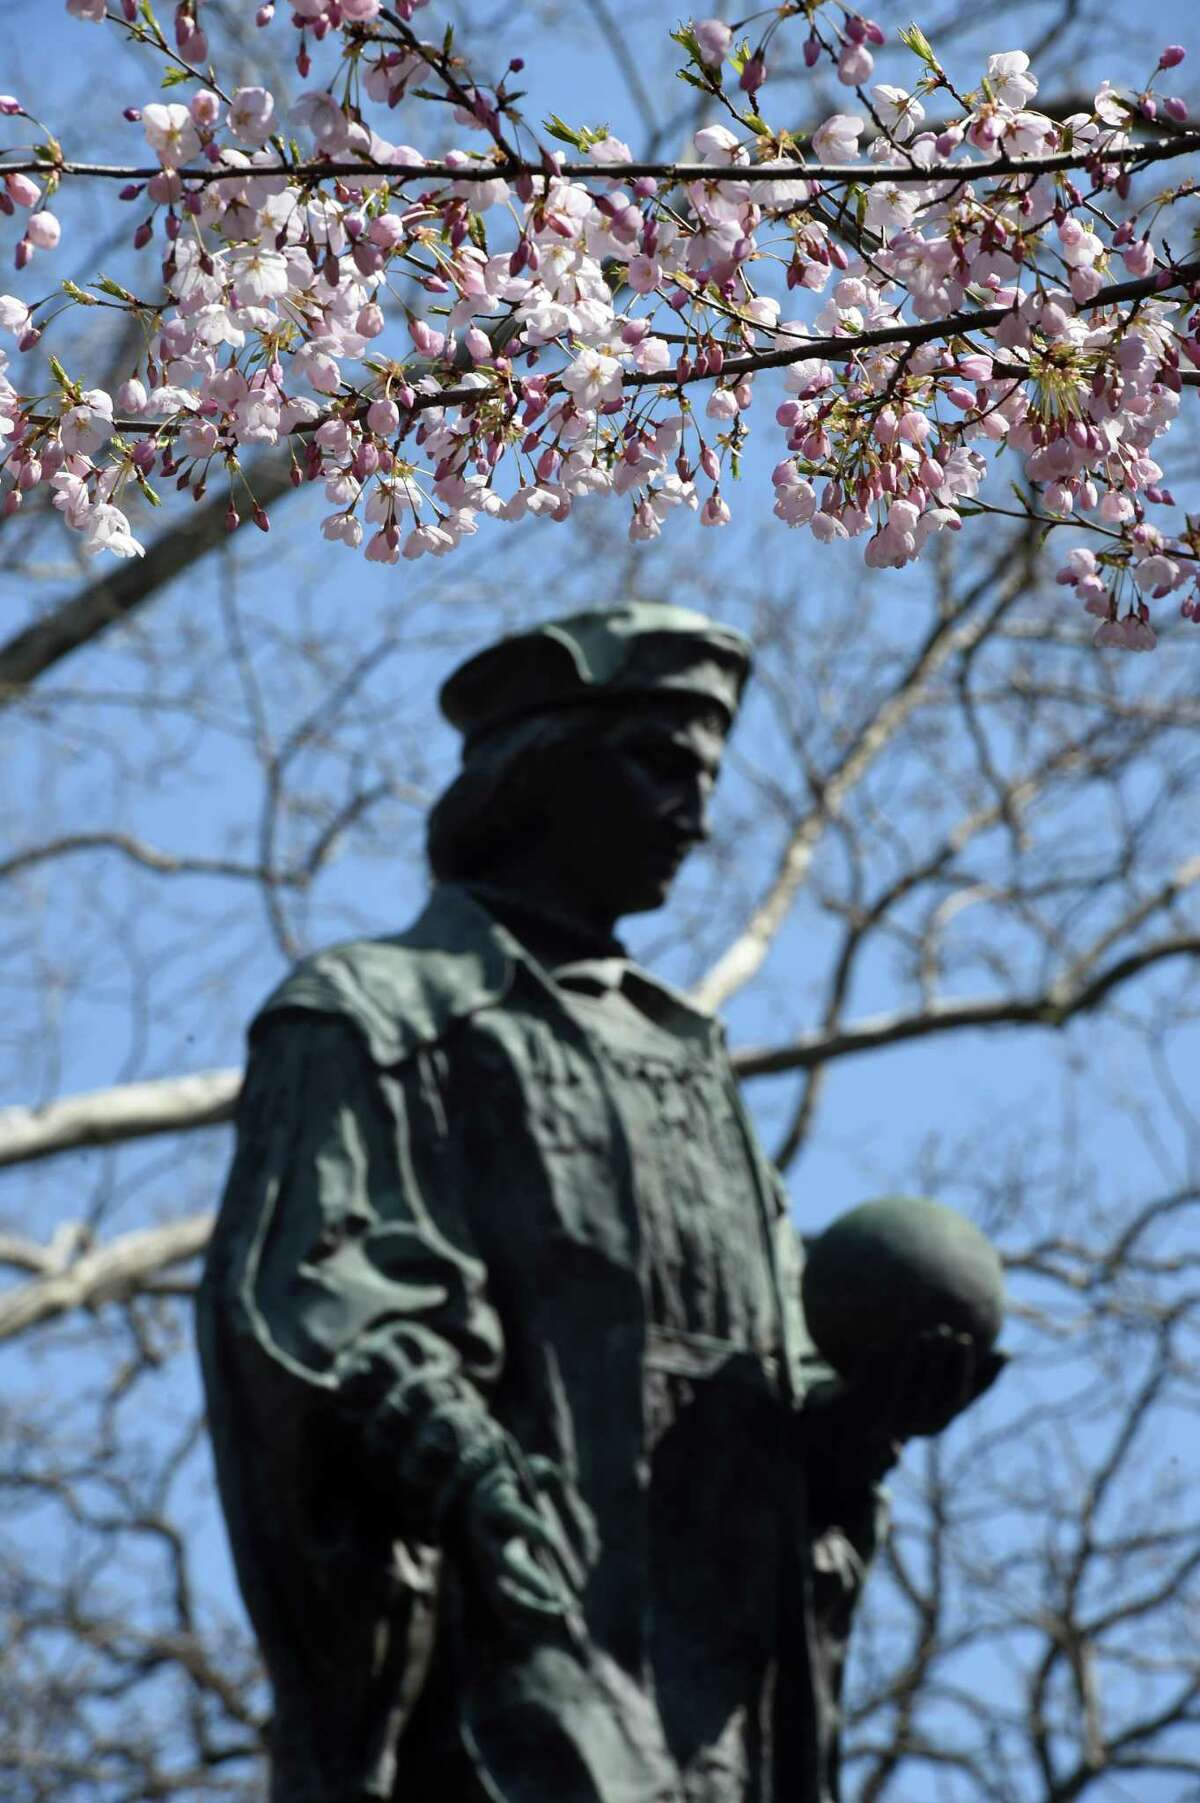 The statue of Christopher Columbus in New Haven's Wooster Square. The 47th Annual Cherry Blossom Festival planned for Sunday April 19th was canceled in the coronavirus pandemic.